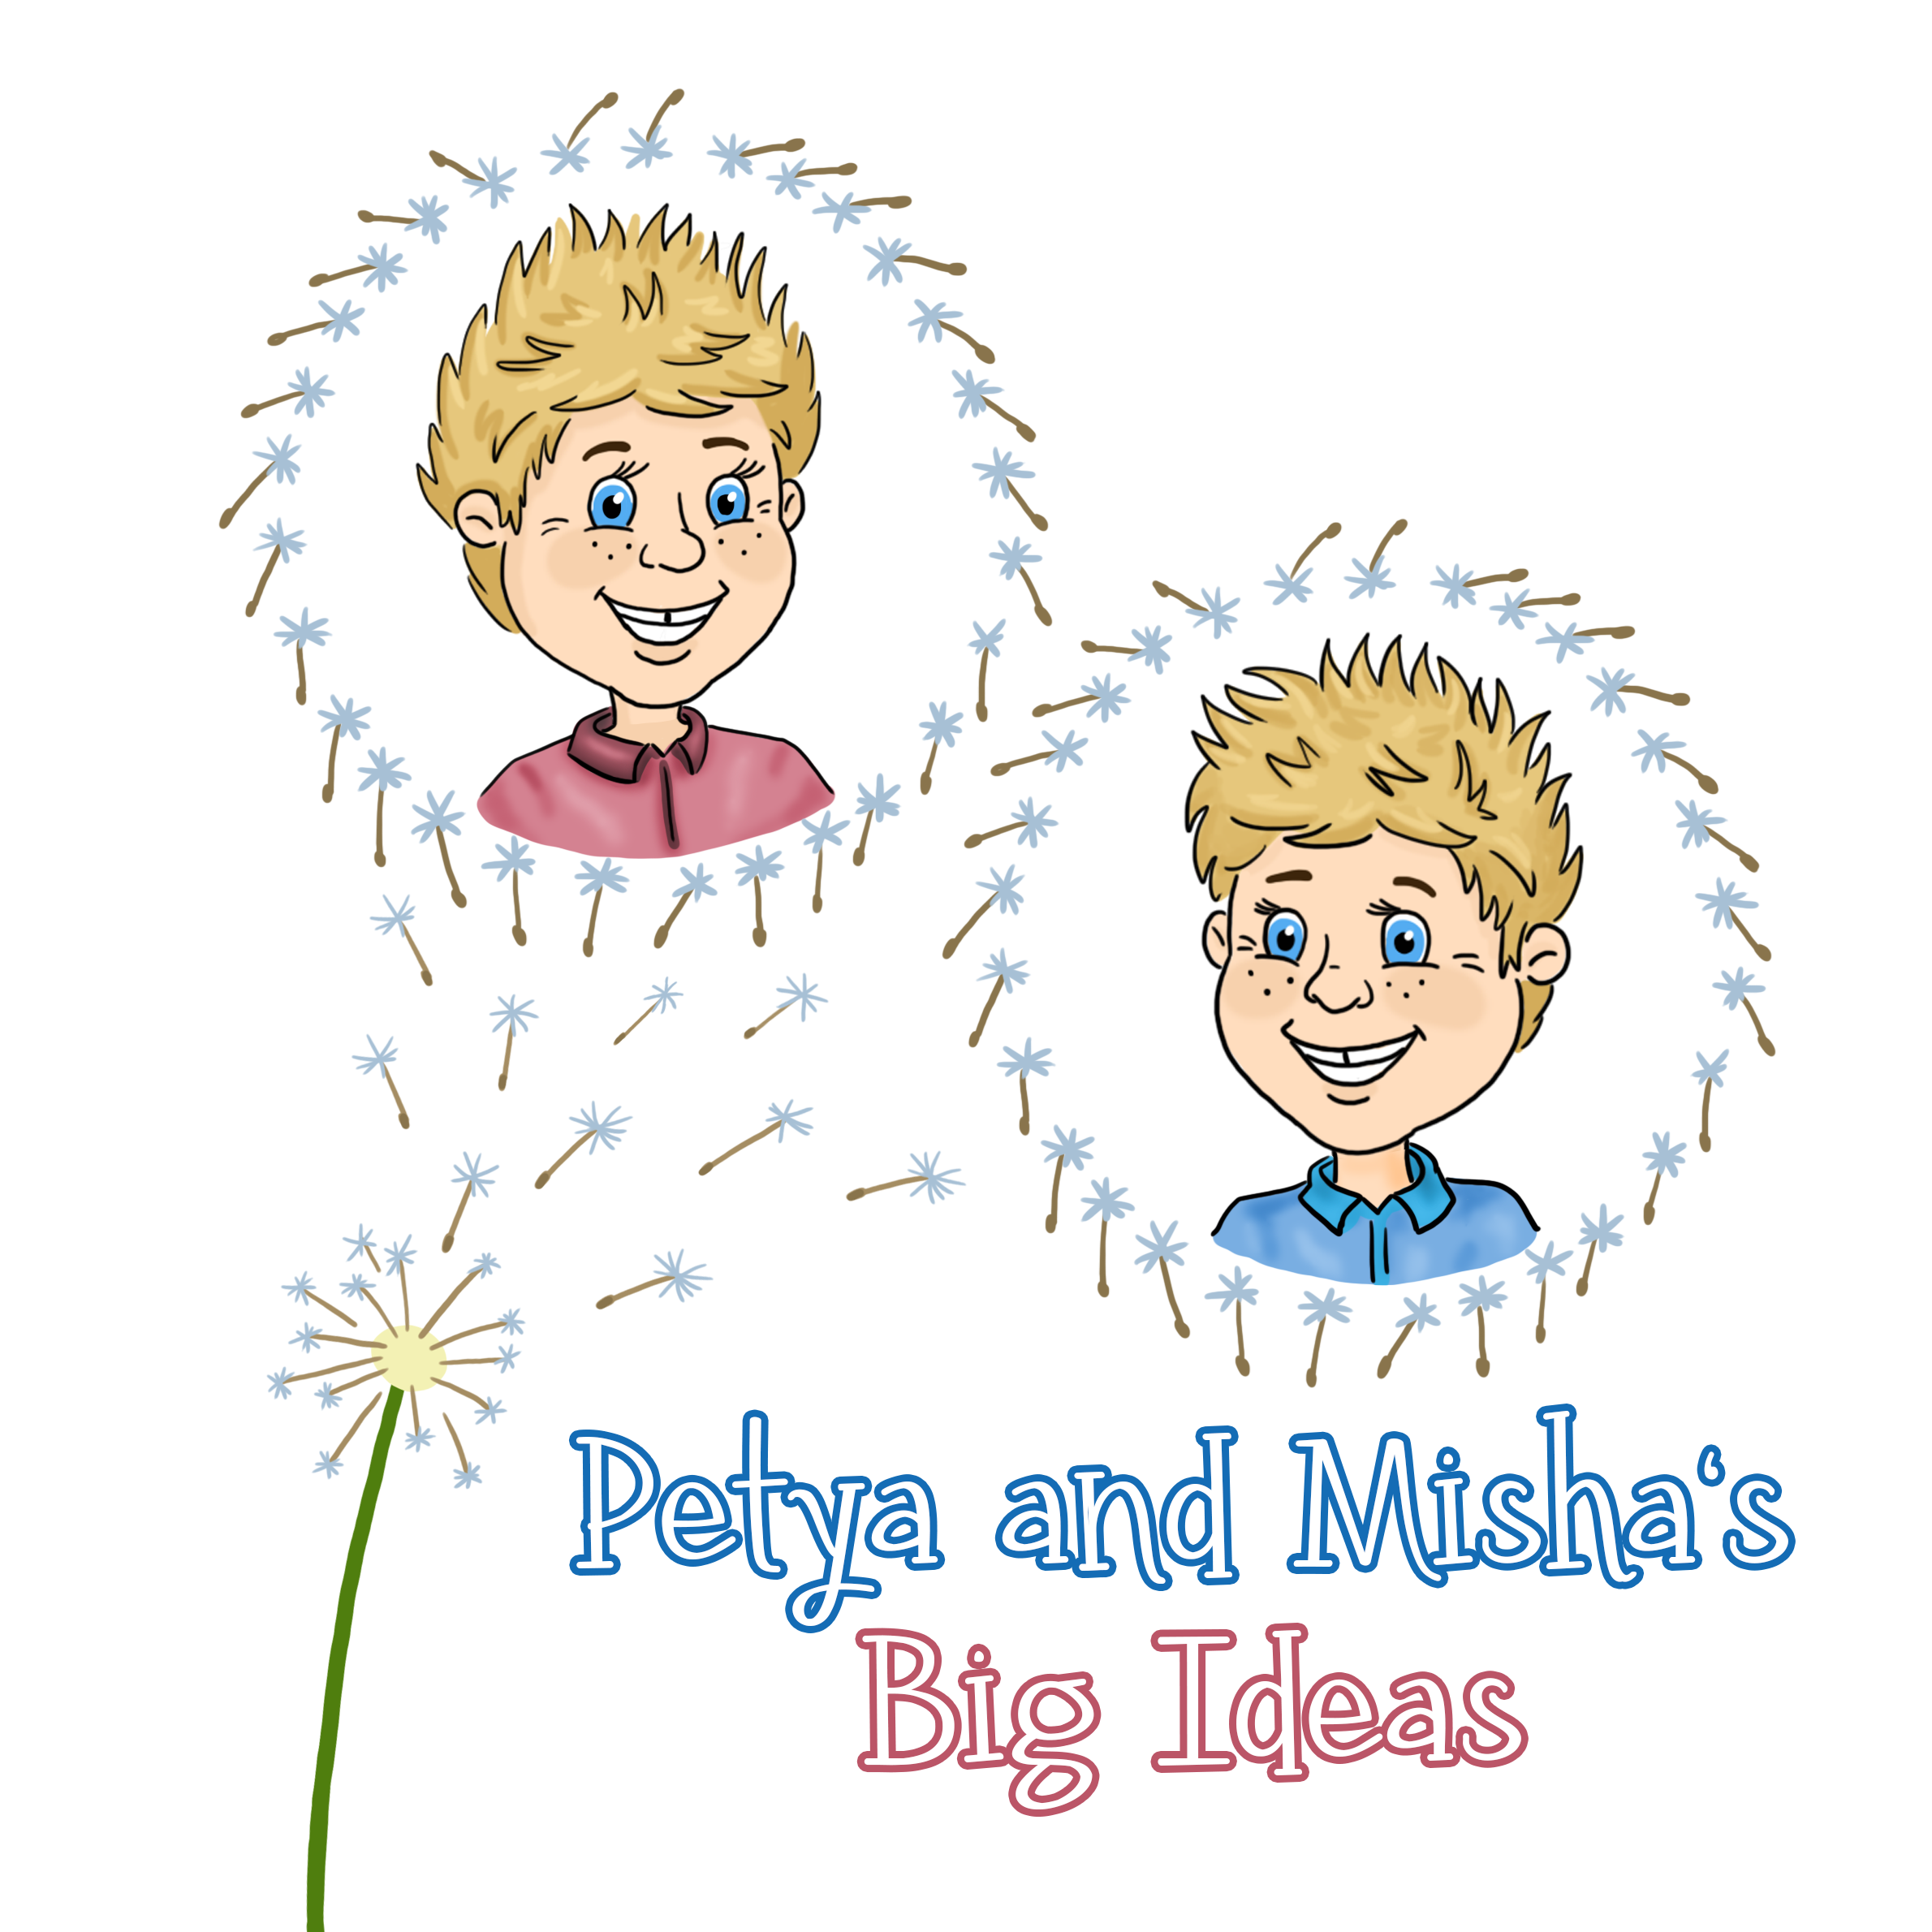 Petya and Misha's Big Ideas